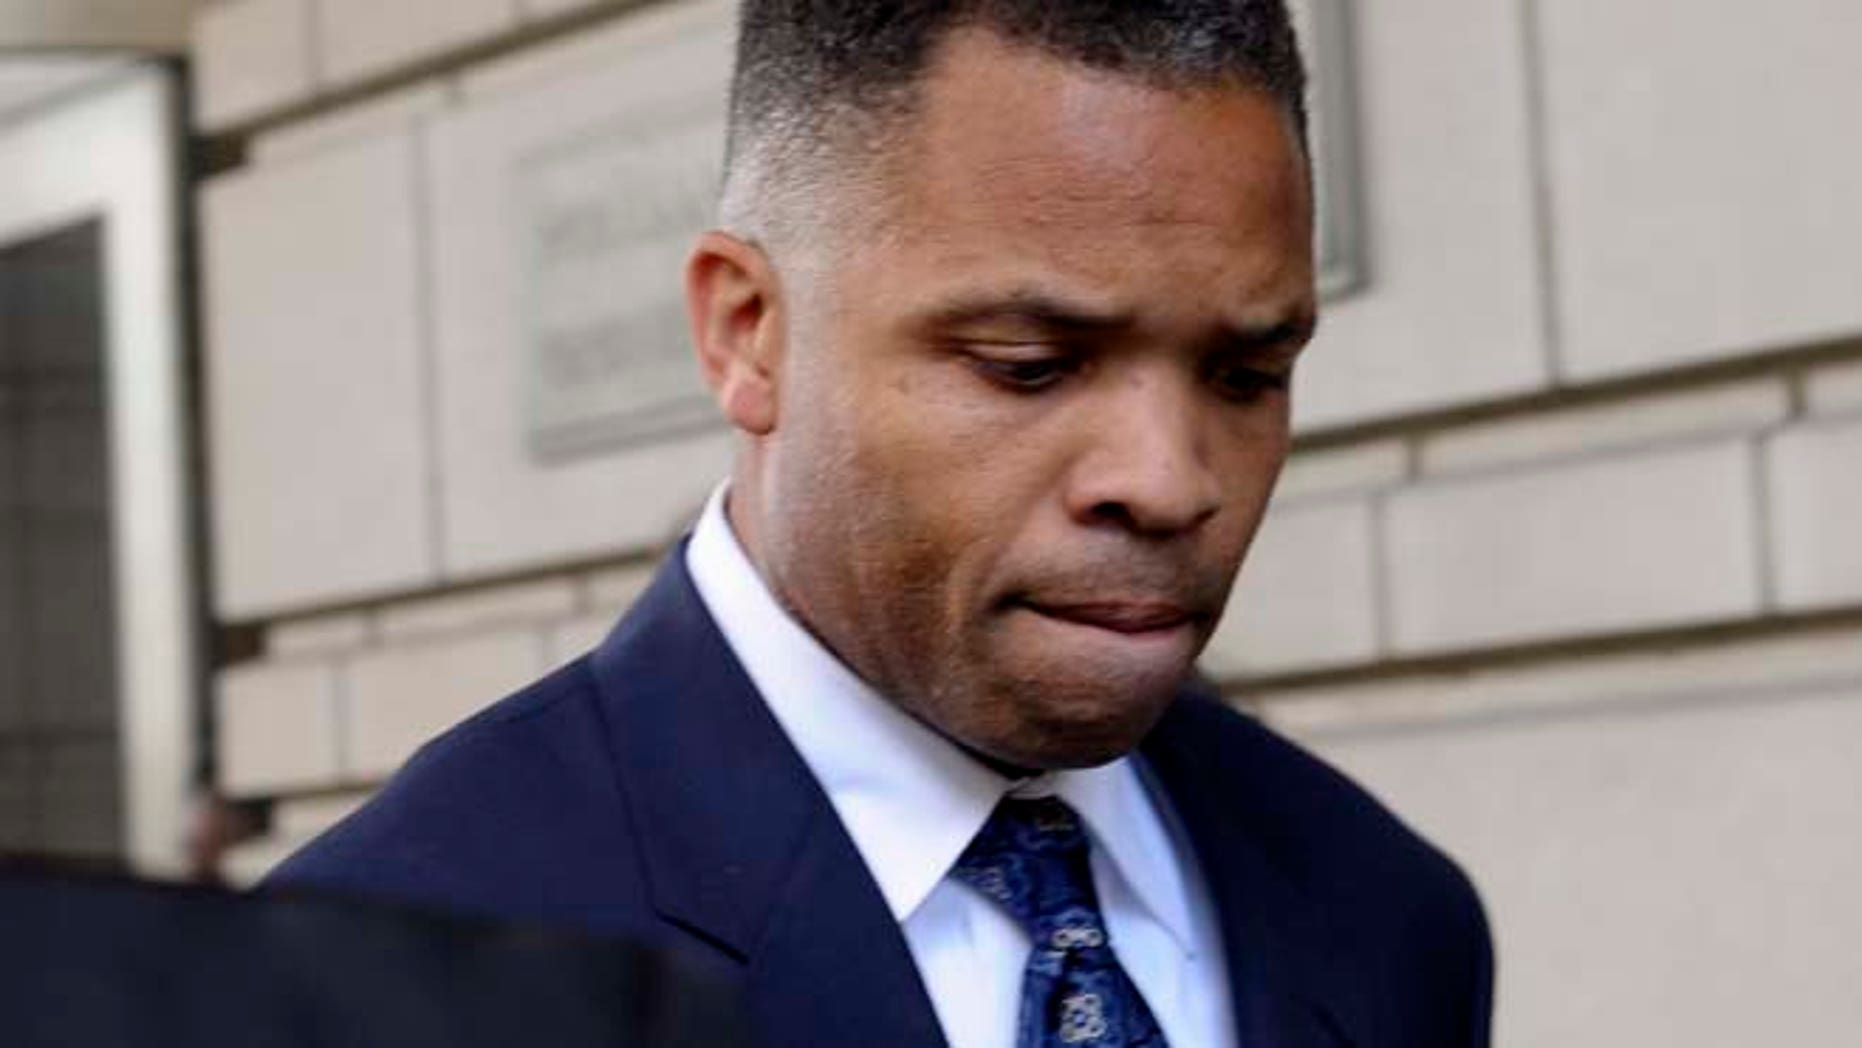 Aug. 14, 2013: In this file photo, former Illinois Rep. Jesse Jackson Jr., leaves federal court in Washington after being sentenced to 2 1/2 years in prison for misusing $750,000 in campaign funds.